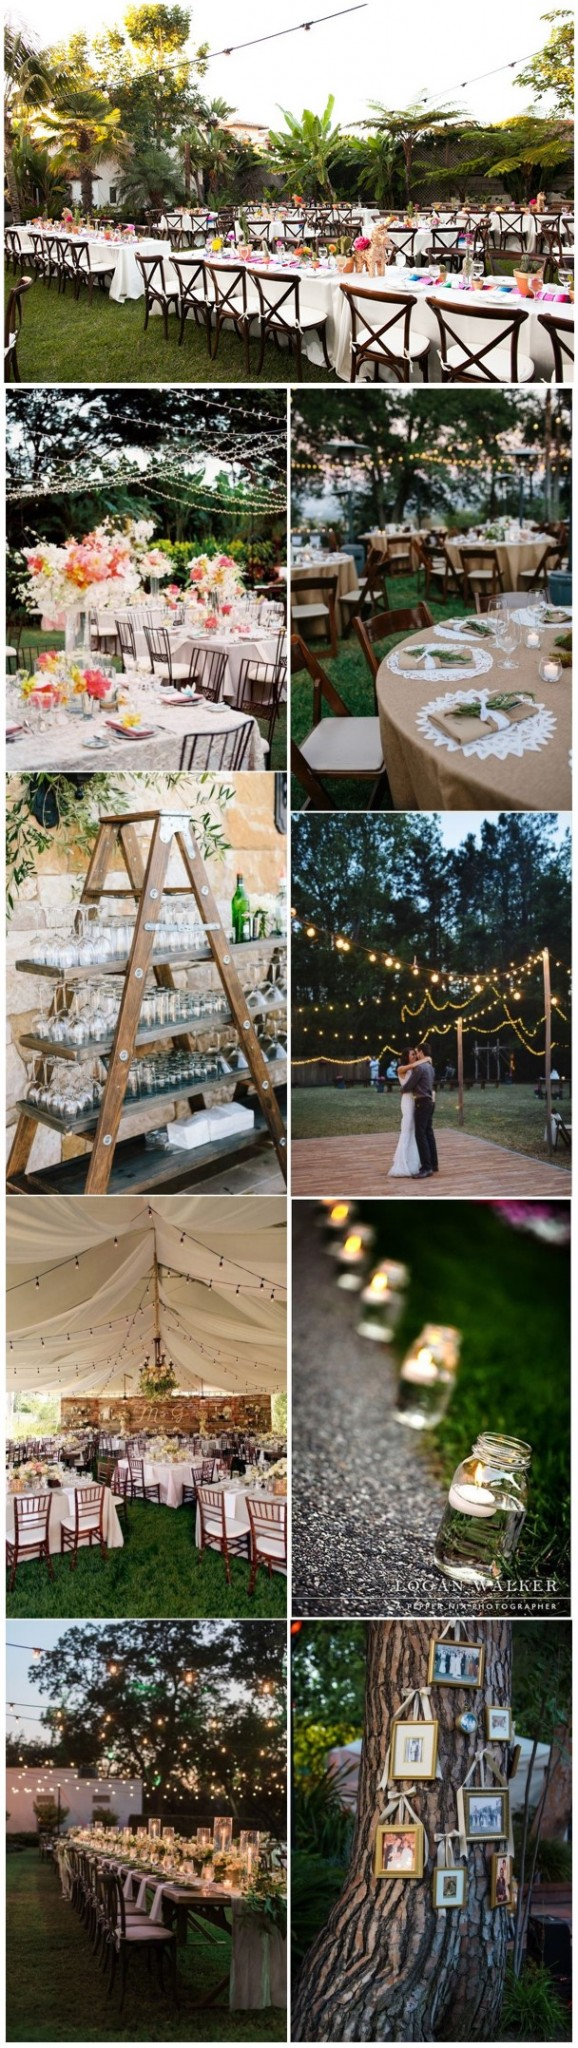 The Most Cozy and Stylish Backyard Wedding Ideas Ever!